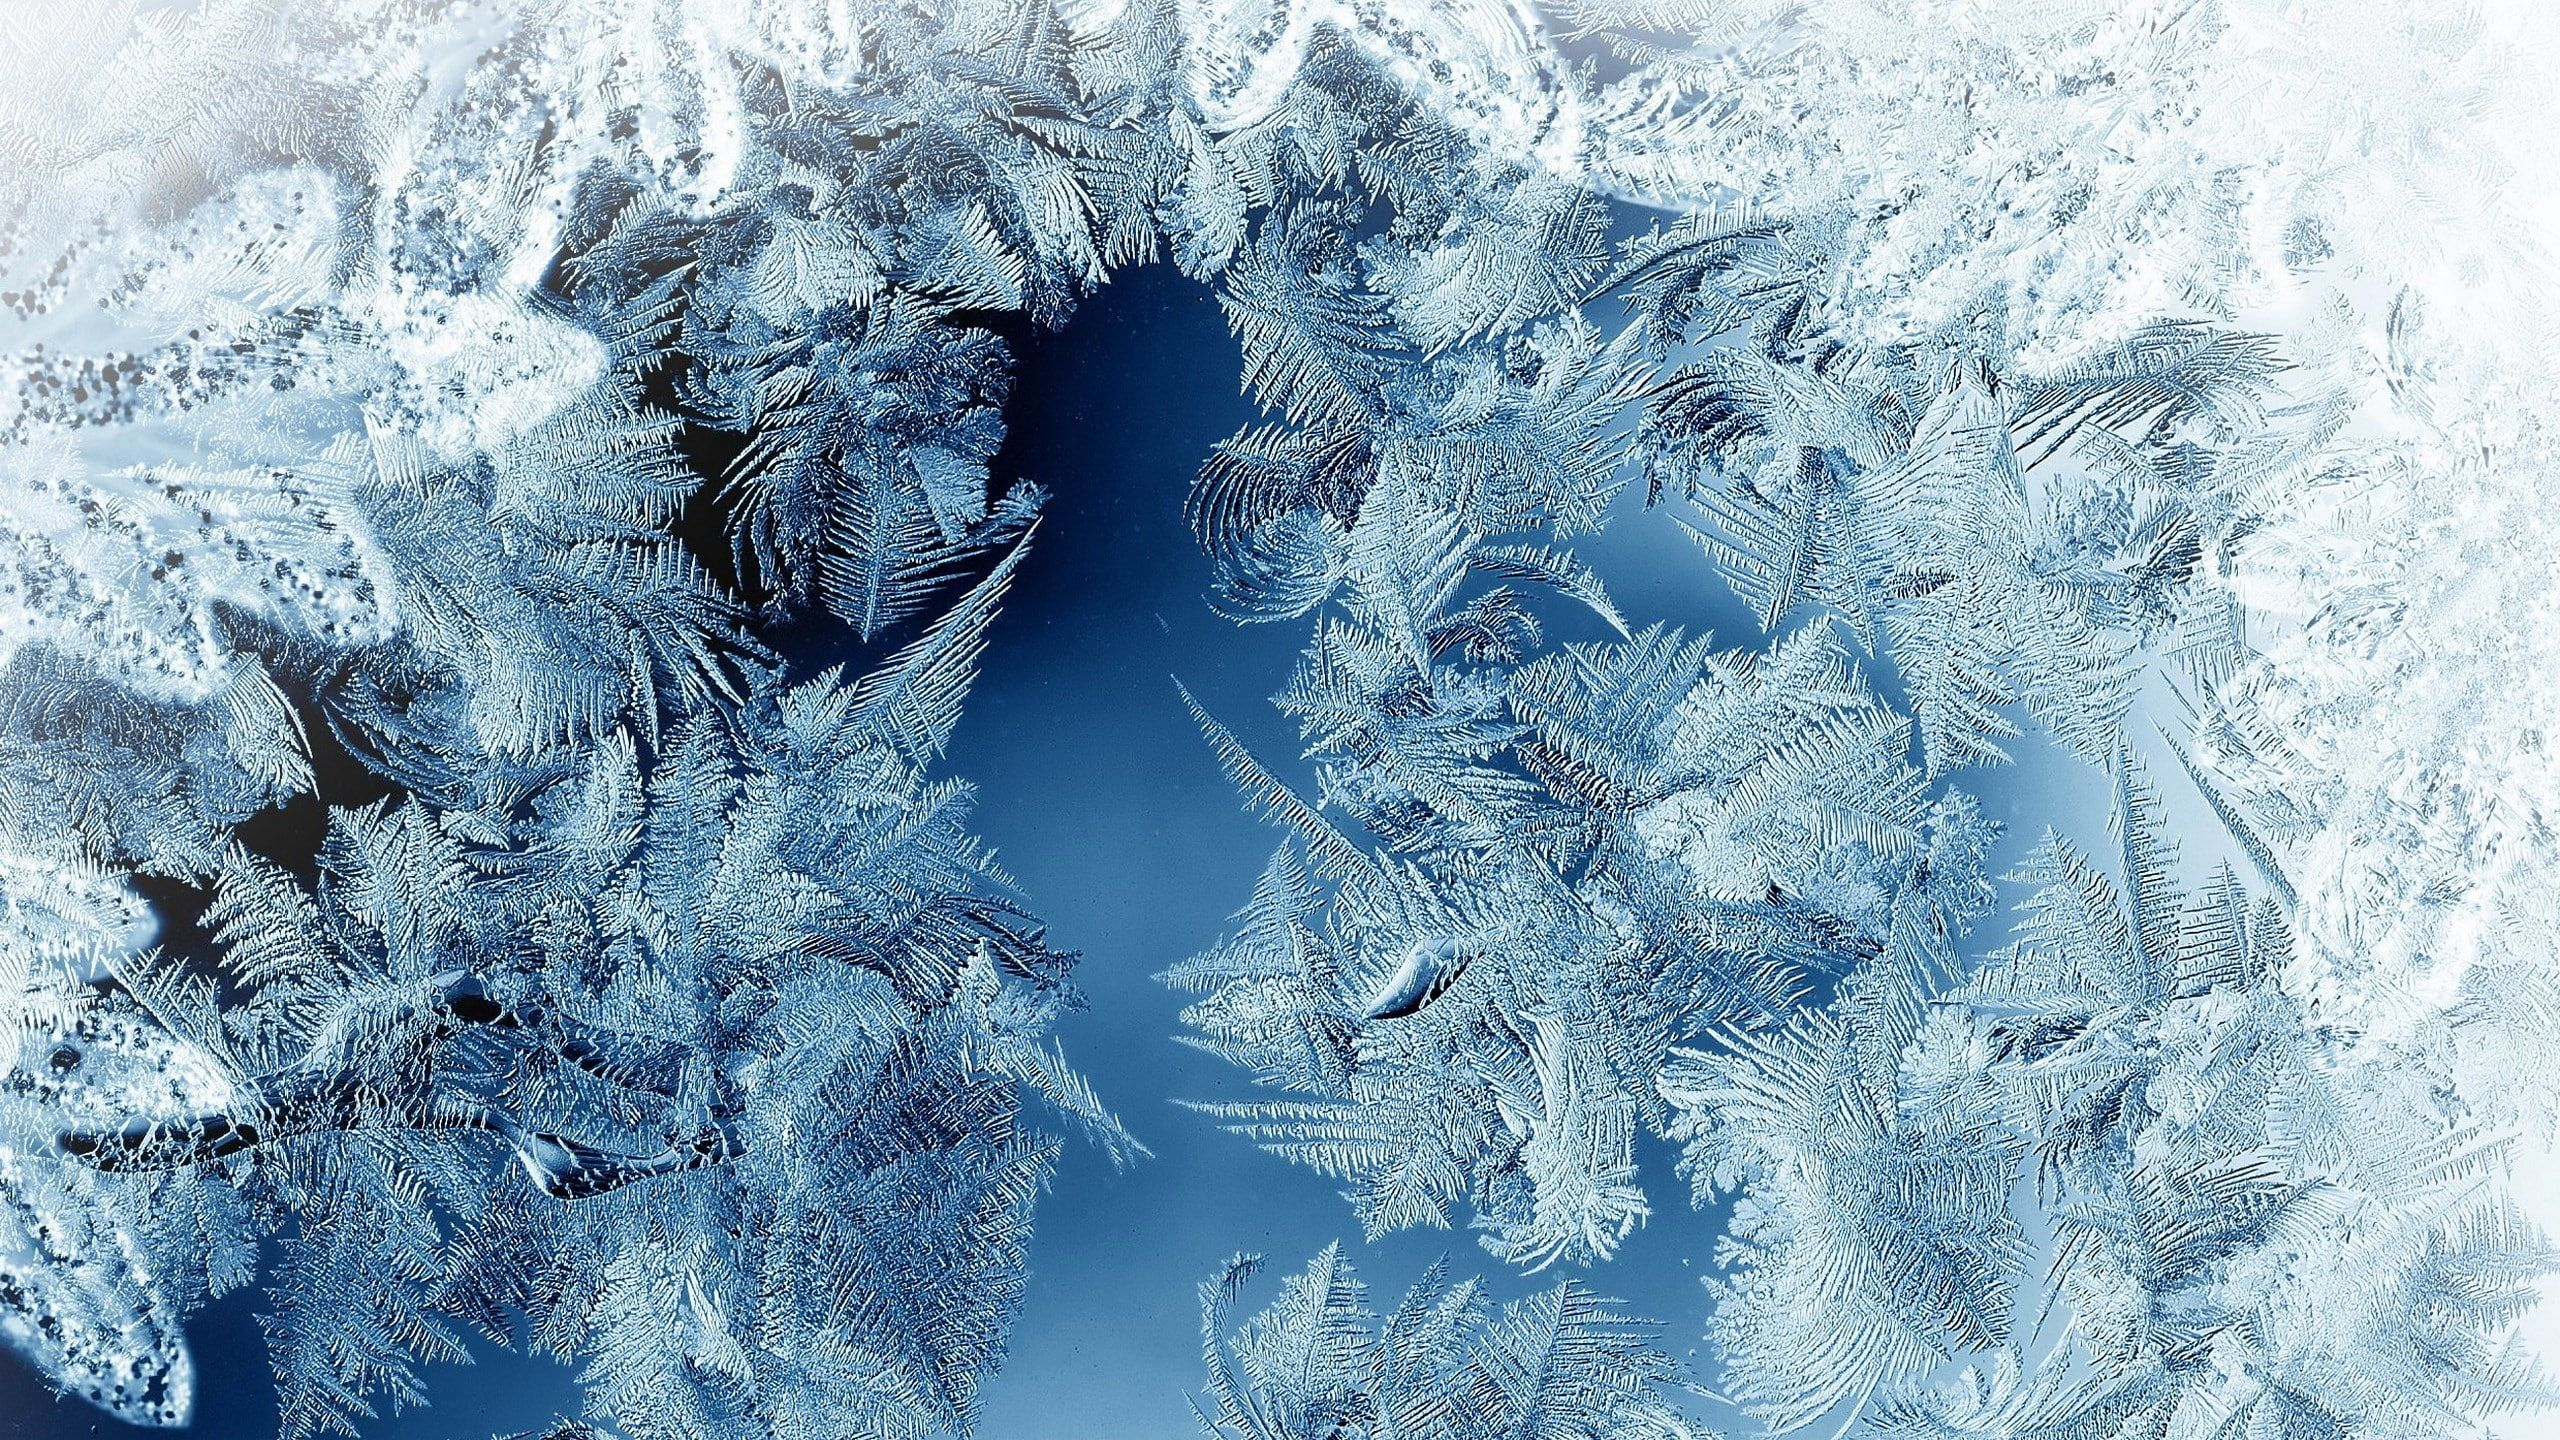 Frosted Glass Picture 2k Wallpaper Hdwallpaper Desktop Glass Pictures Wallpaper Glass Wallpaper